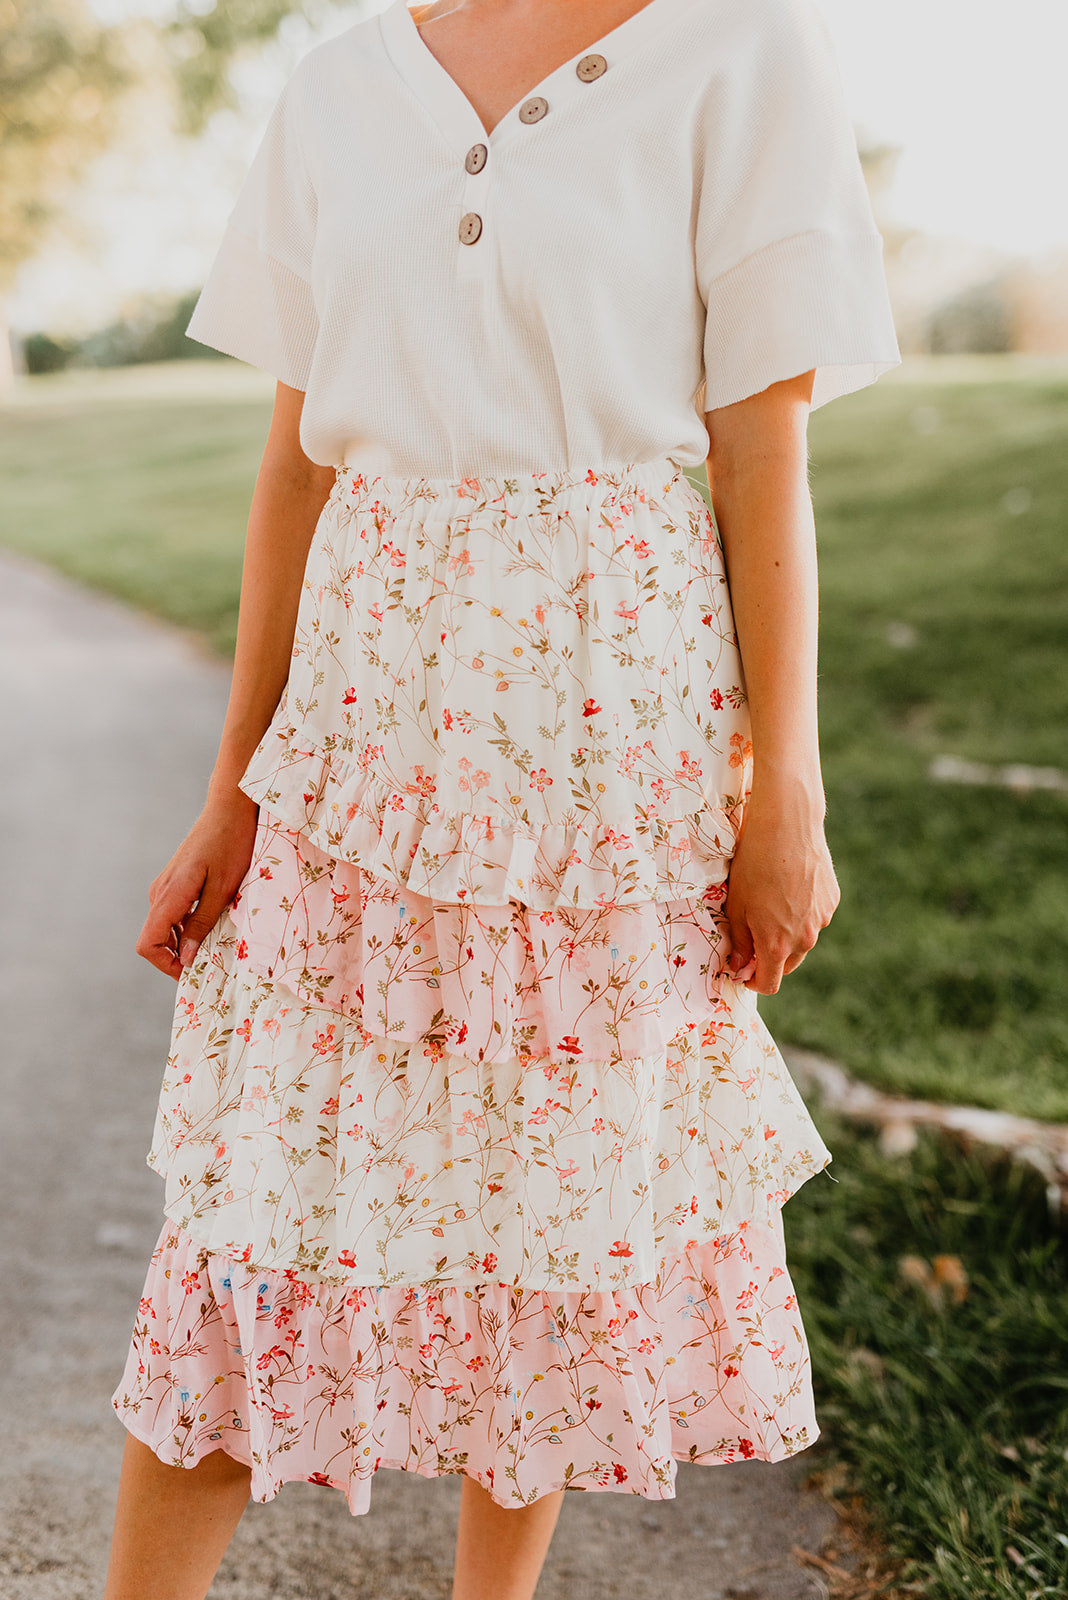 THE TIFFANY TIERED FLORAL MIDI SKIRT IN OFF WHITE AND PINK